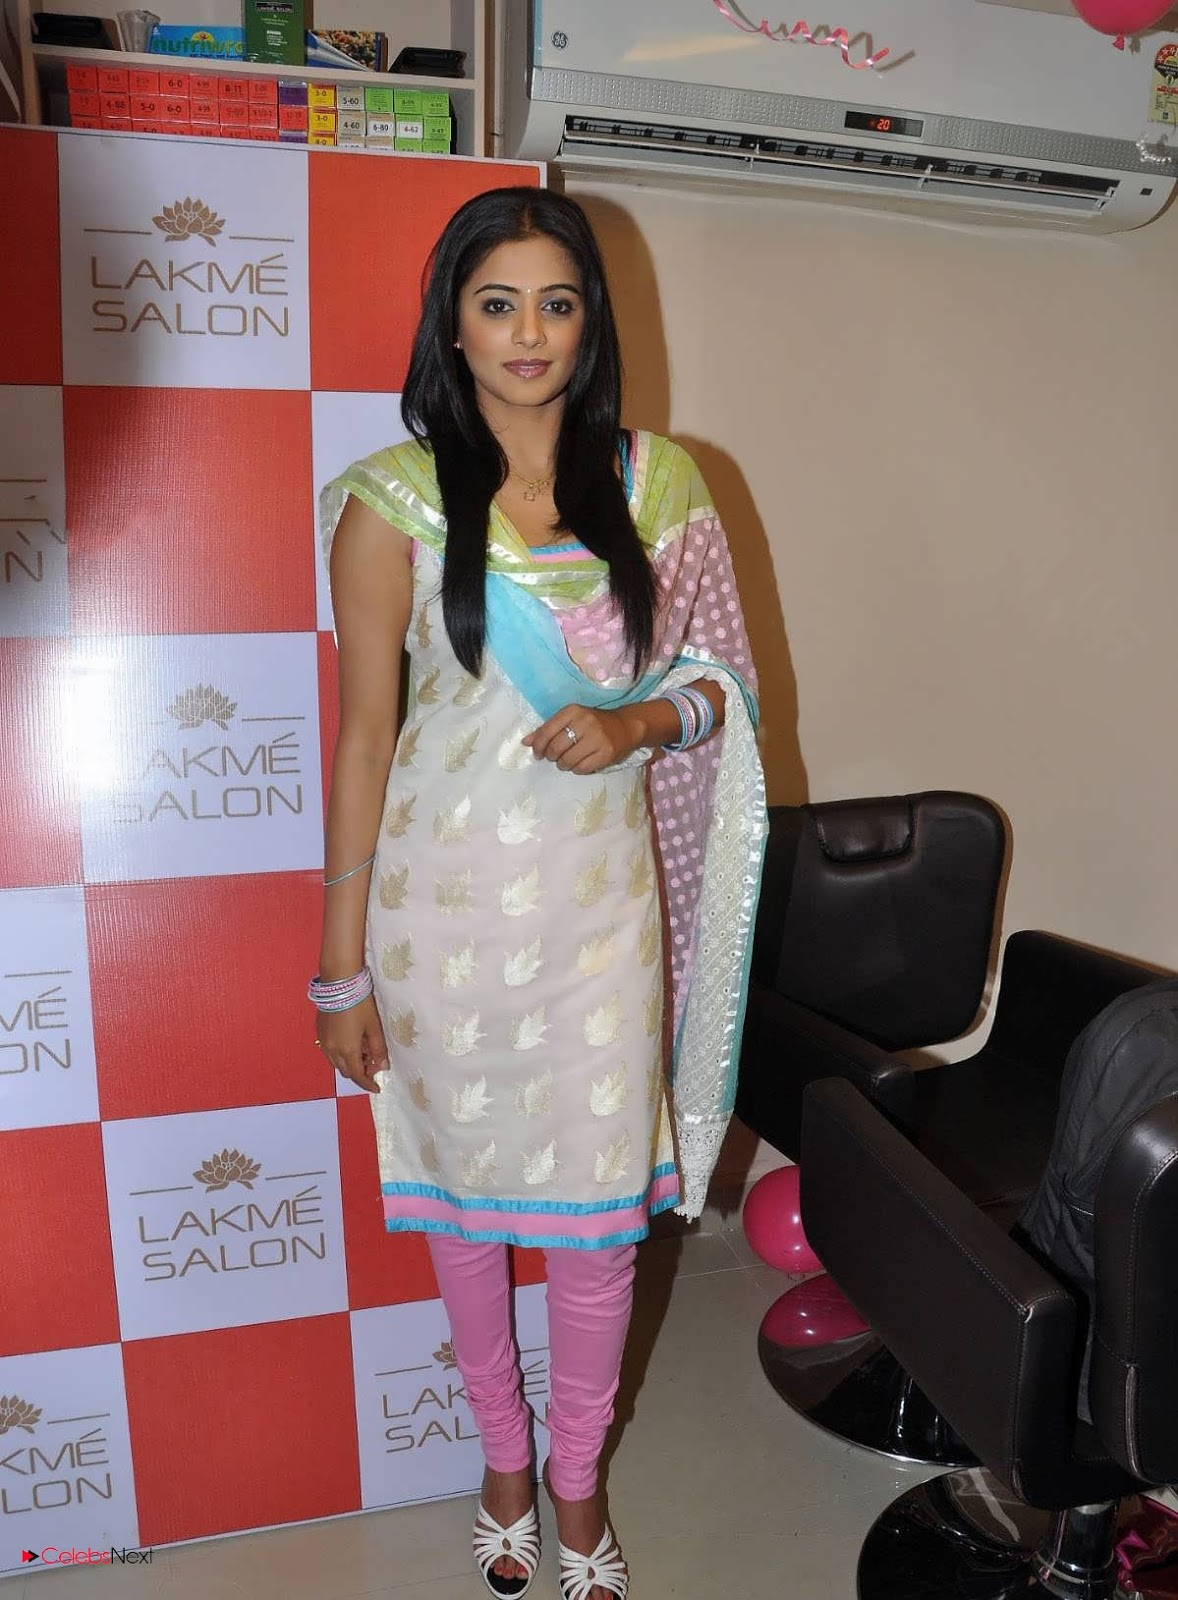 Priyamani Pictures in Salwar Kameez at Lakme Salon Launch at Secundrabad ~ Celebs Next